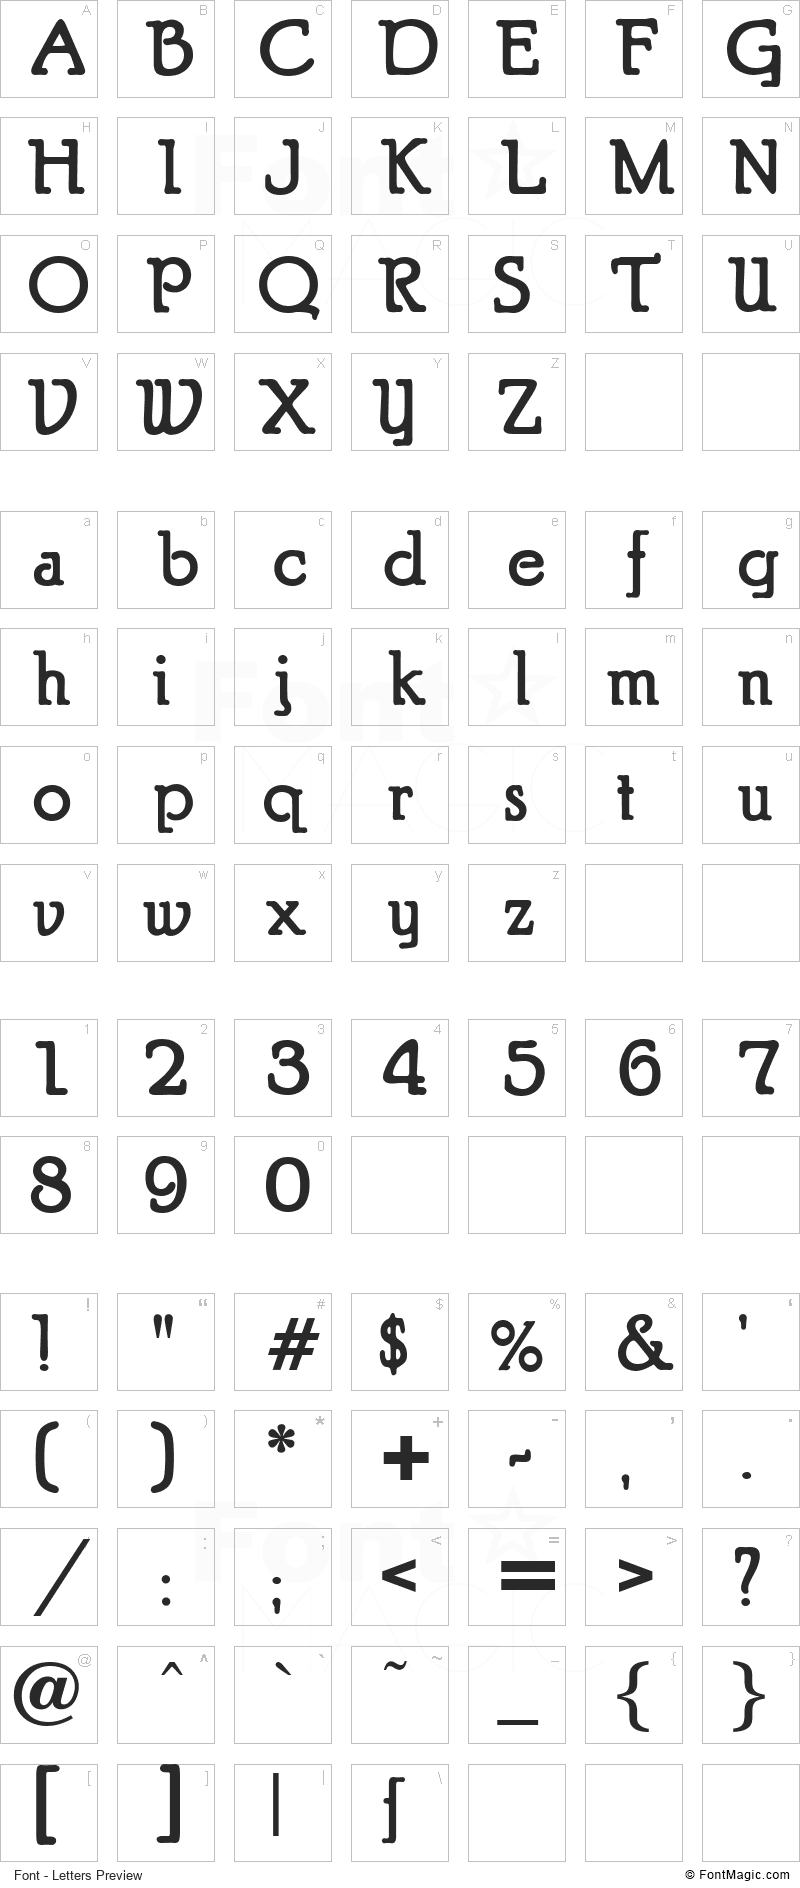 Puritan Font - All Latters Preview Chart